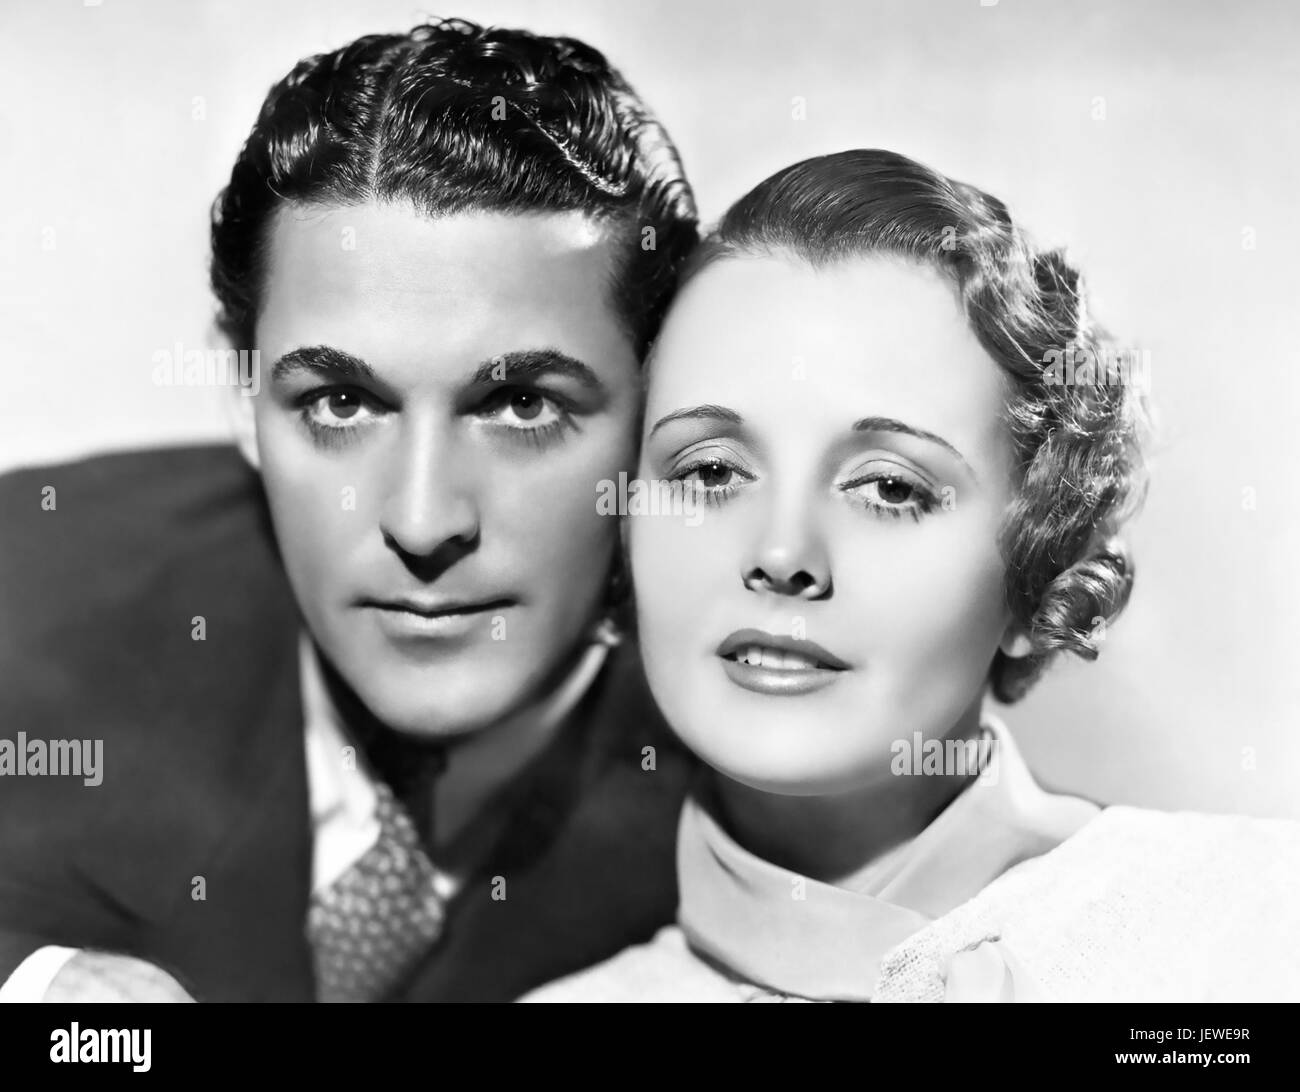 LADY FROM NOWHERE 1936 Columbia film with Mary Astor and Charles Quigley - Stock Image